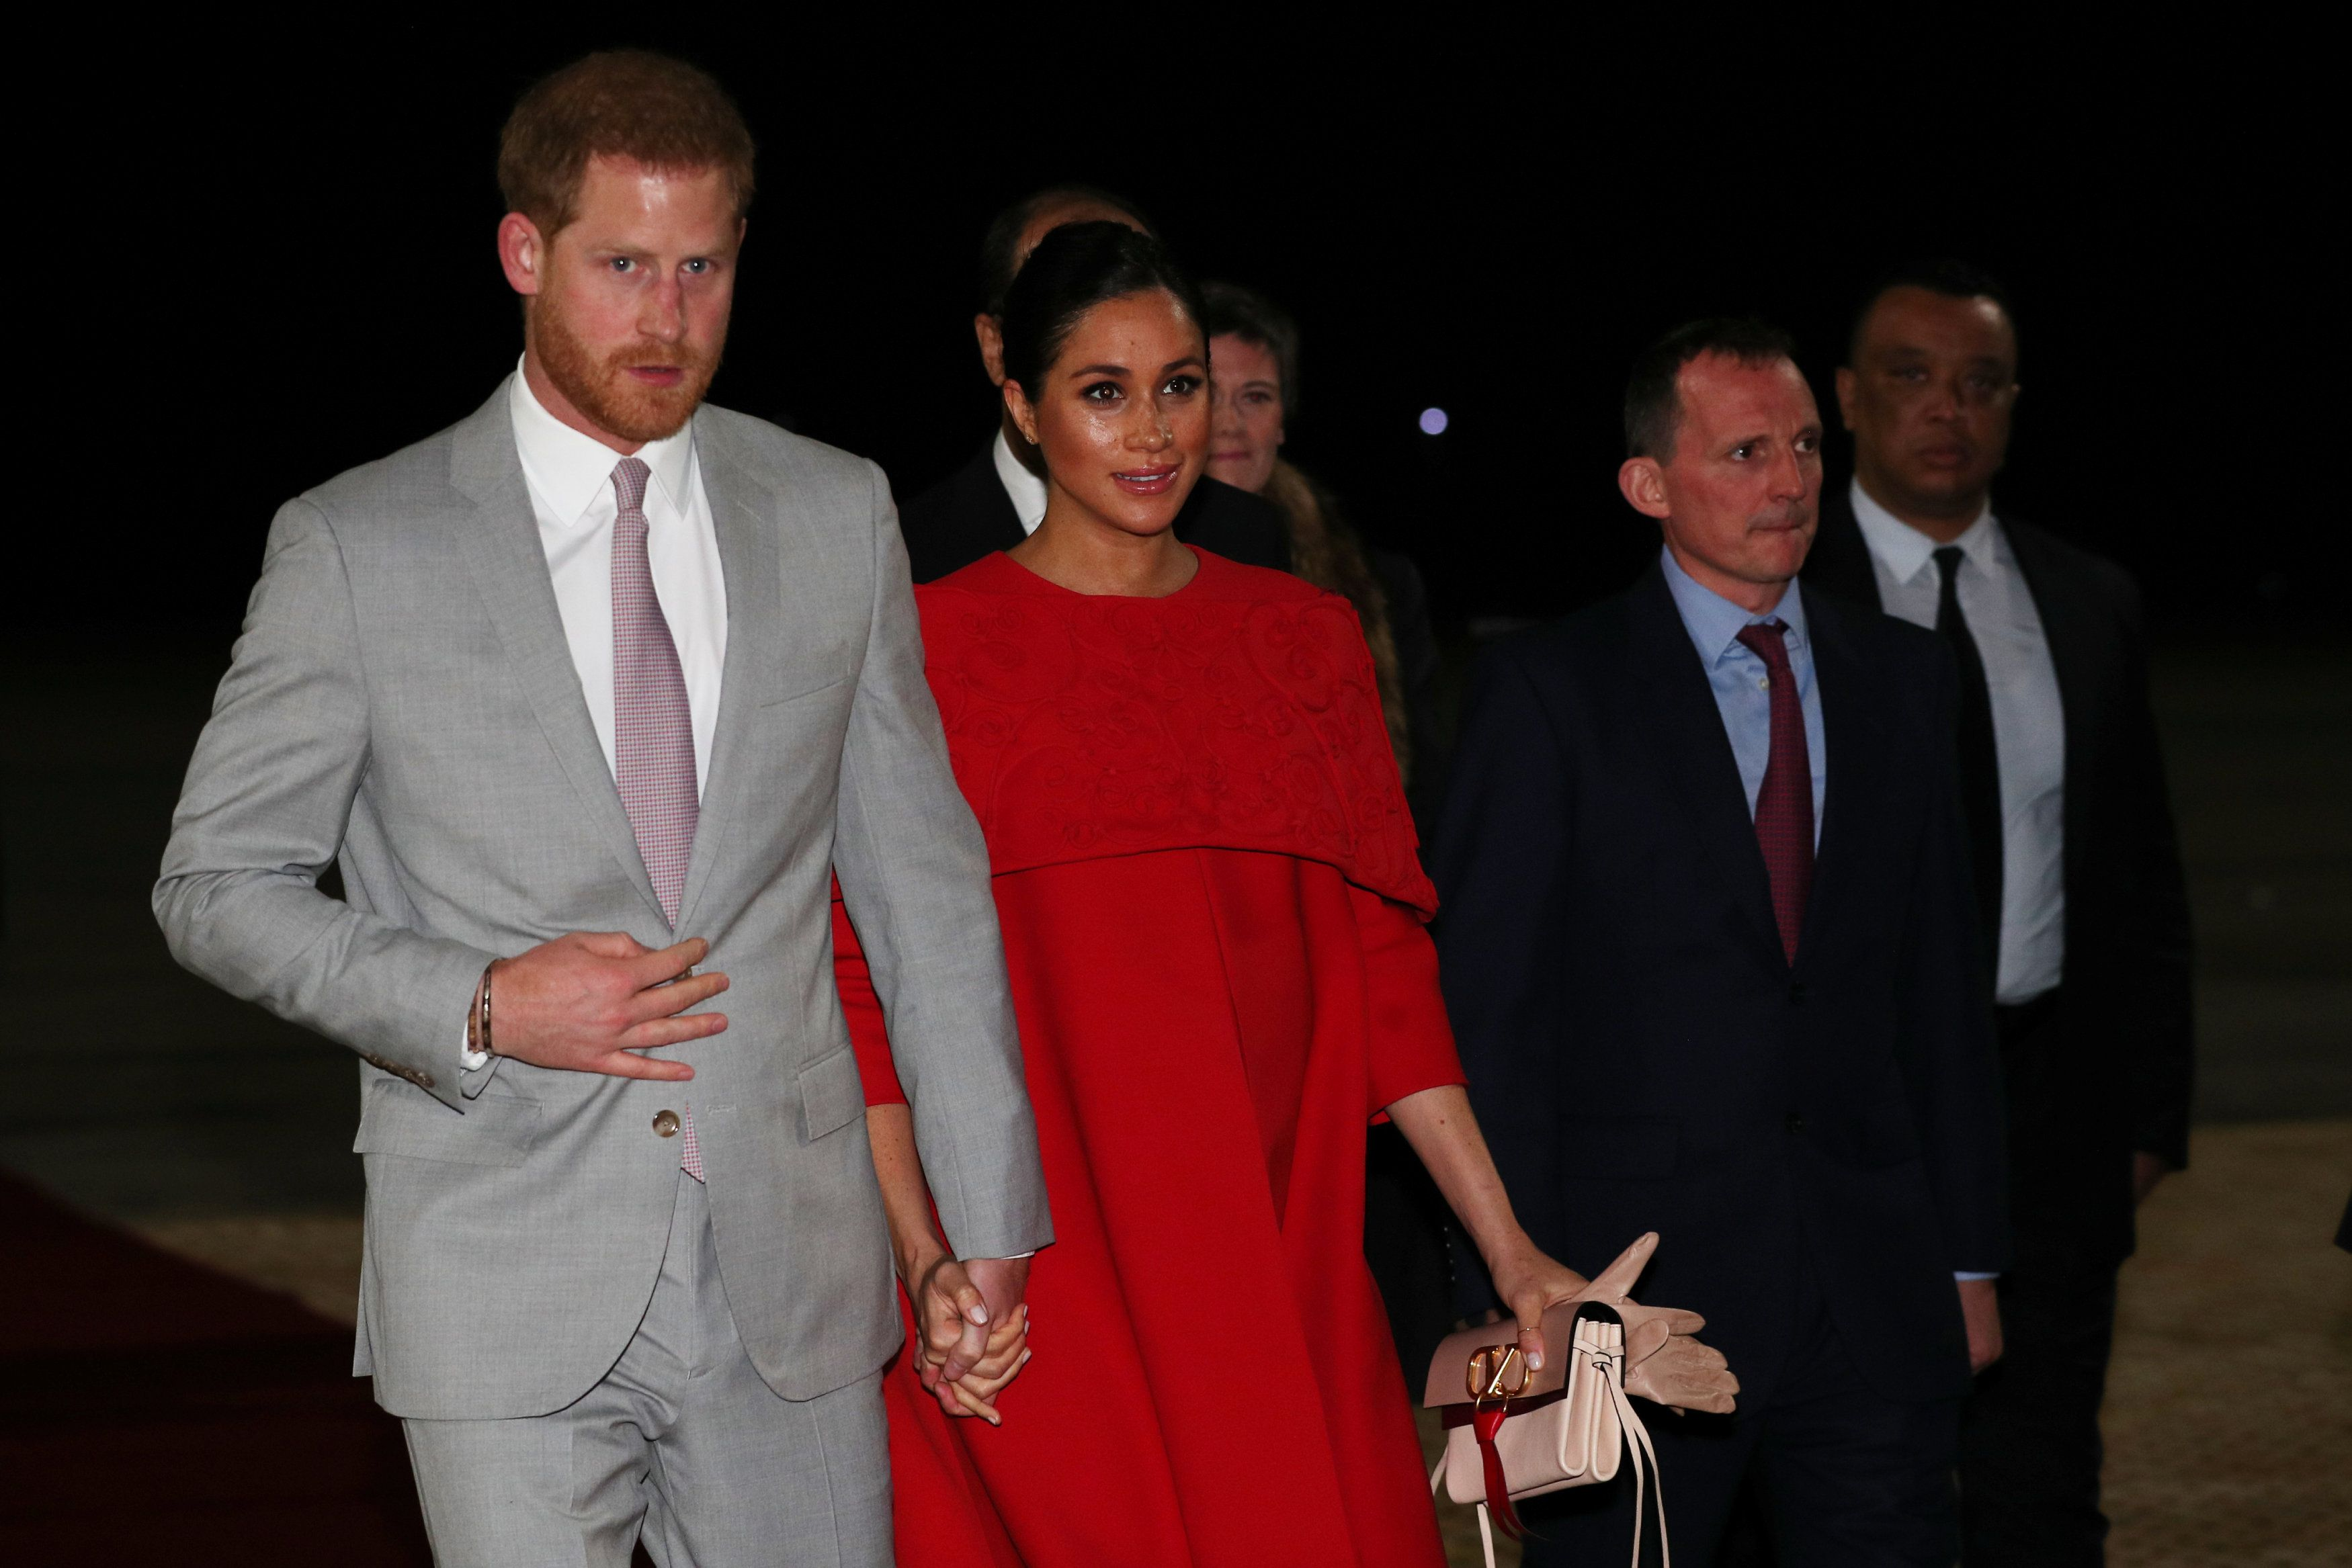 Meghan Markle Just Arrived in Morocco Wearing a Striking Red Valentino Cape Dress